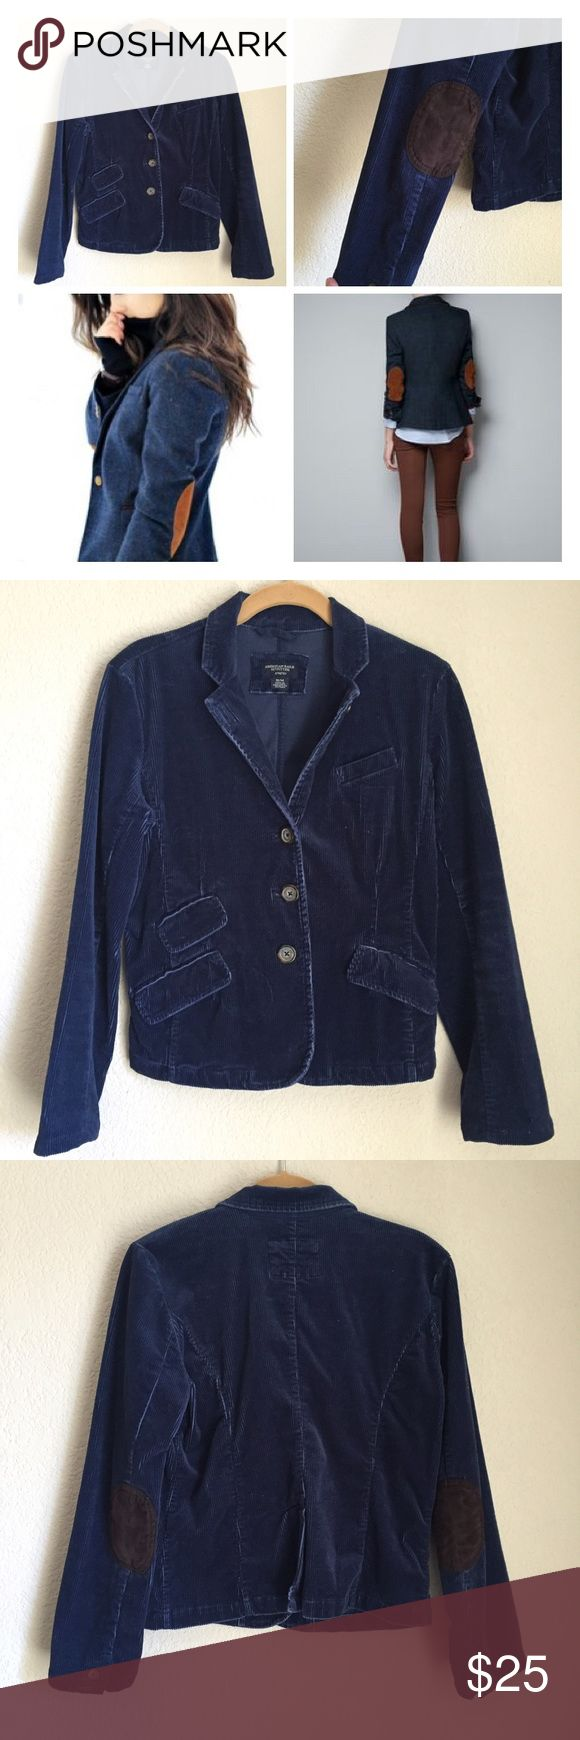 American eagle outfitters stretch corduroy blazer American eagle outfitters stretch corduroy blazer jacket cotton spandex with multi pockets! Adorable American Eagle Outfitters Jackets & Coats Blazers